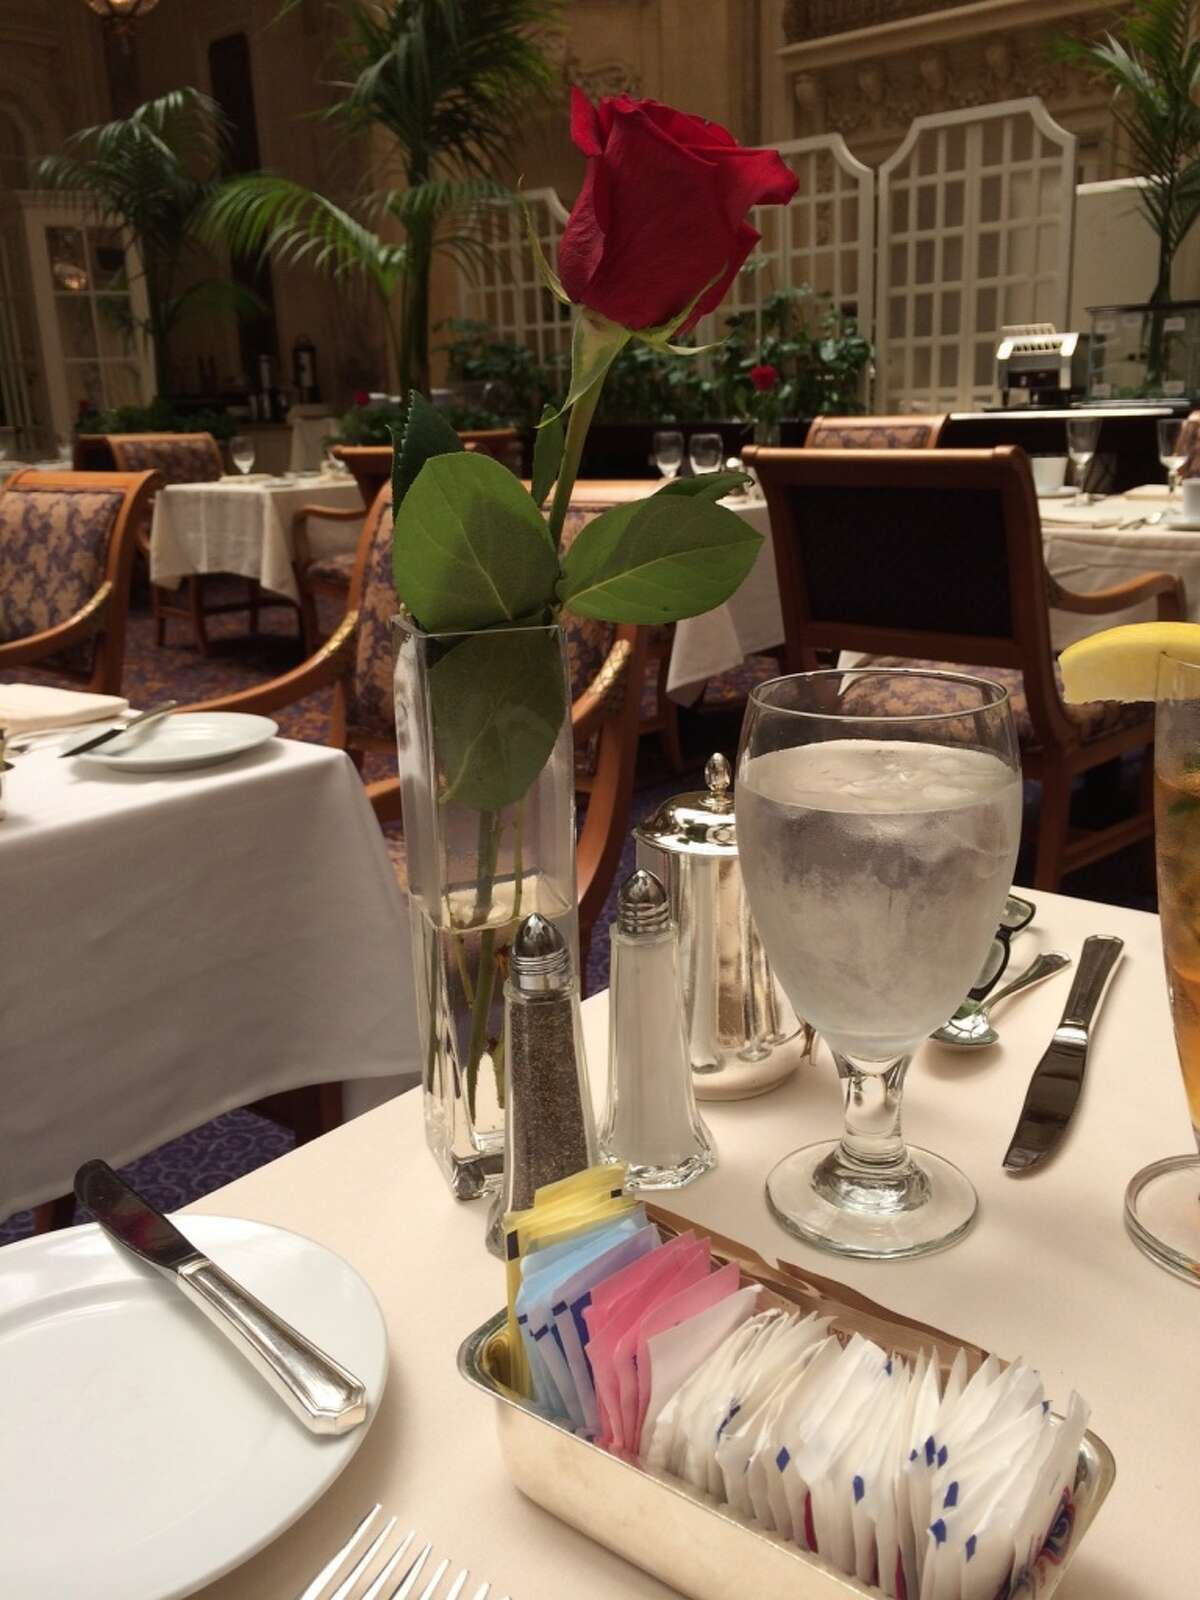 Each table is set with heavy hotel silver and a single red rose.